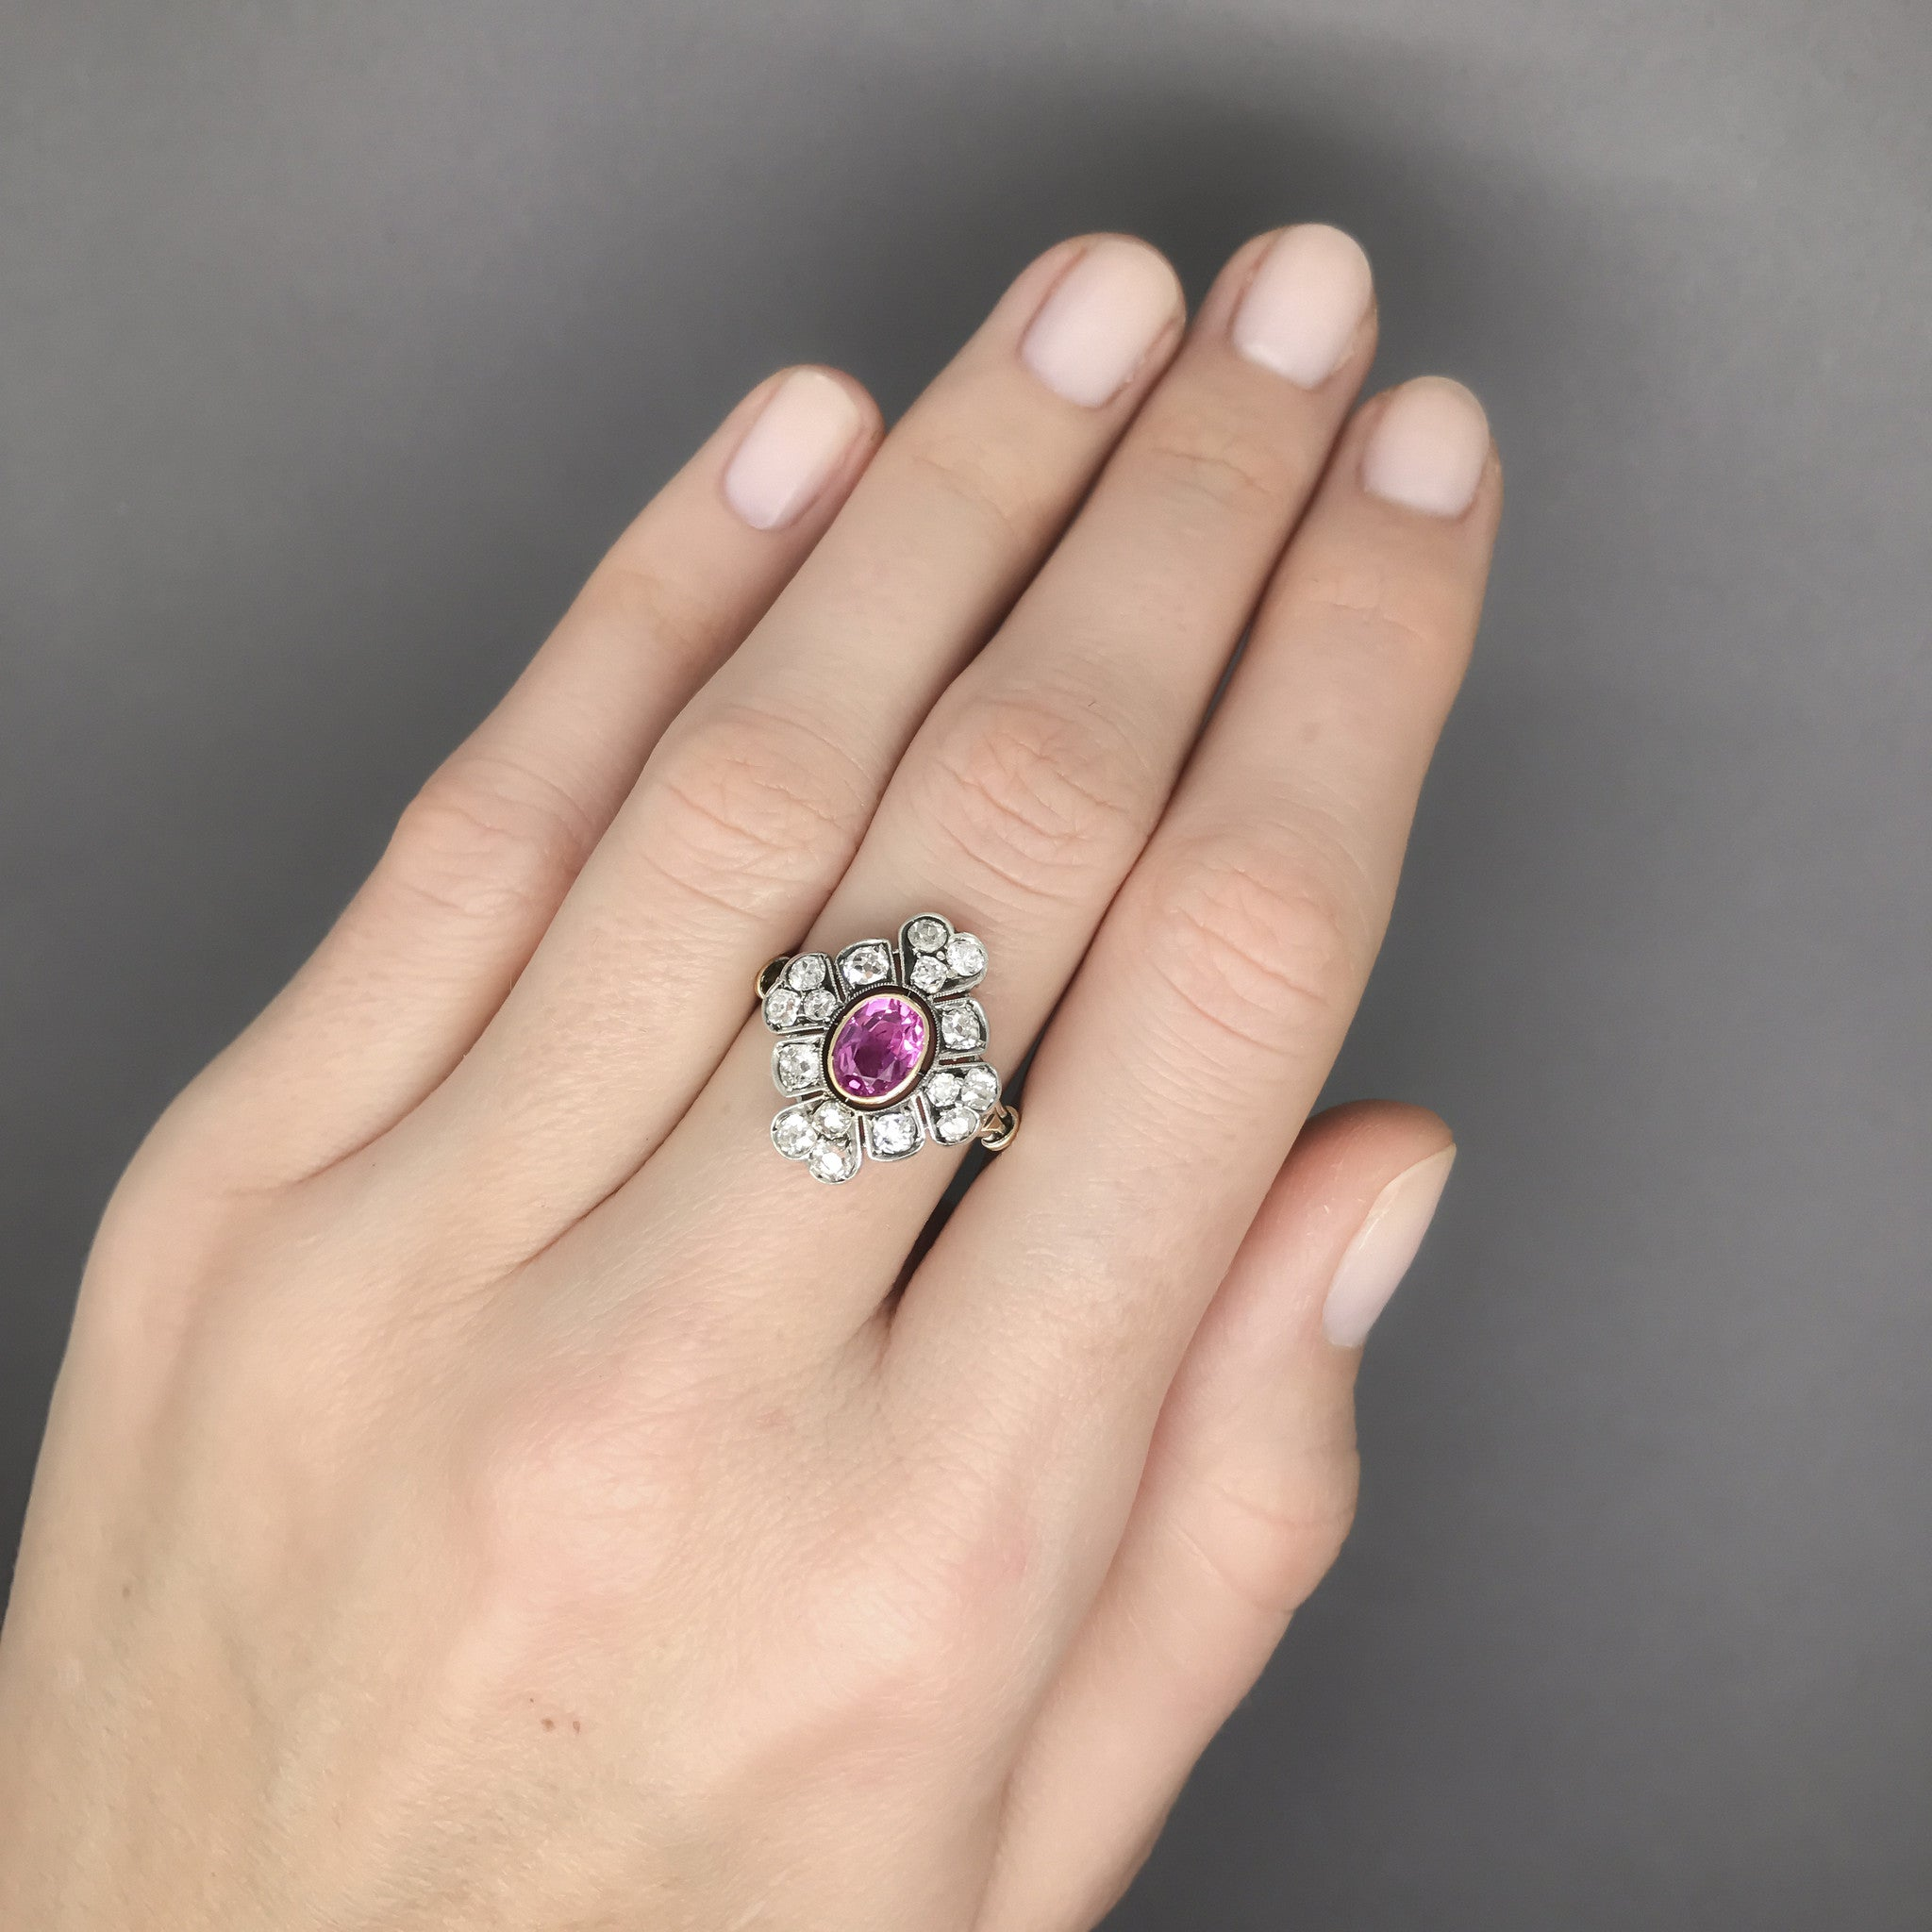 color pin vivid pink stone fancy diamond rings engagement ring